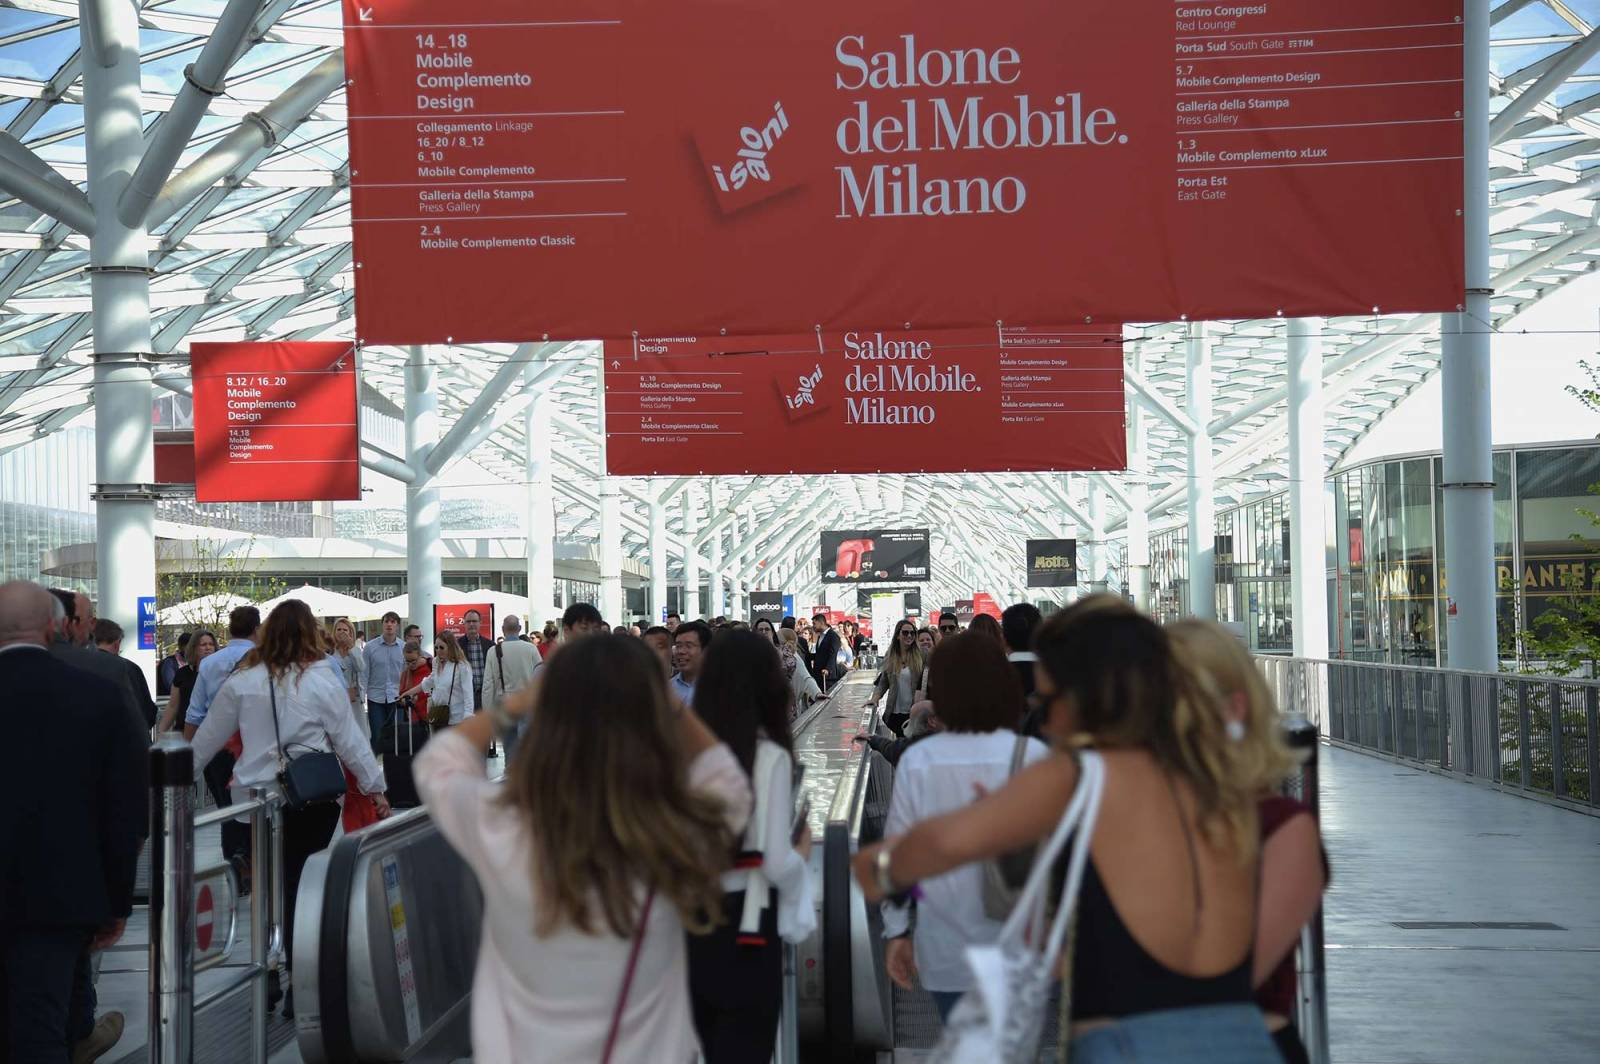 iSaloni 2018 w Mediolanie (Fot. Getty Images)